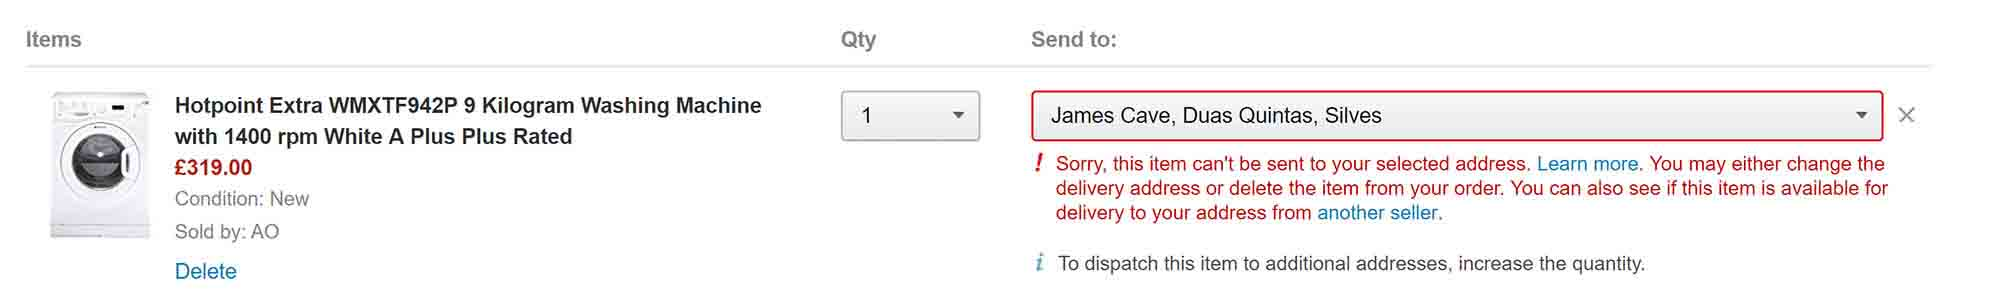 amazon uk can't ship